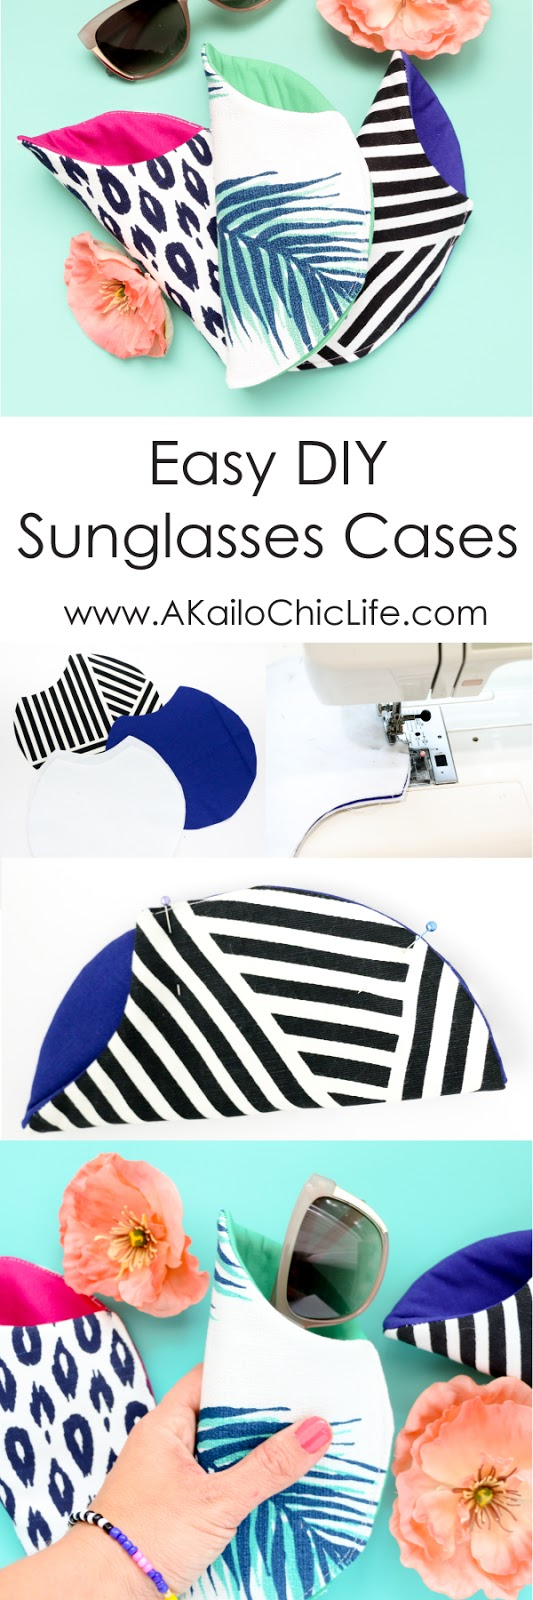 Learn how to make these simple sunglasses cases for Mother's Day or any time really. Great begining sewing project.